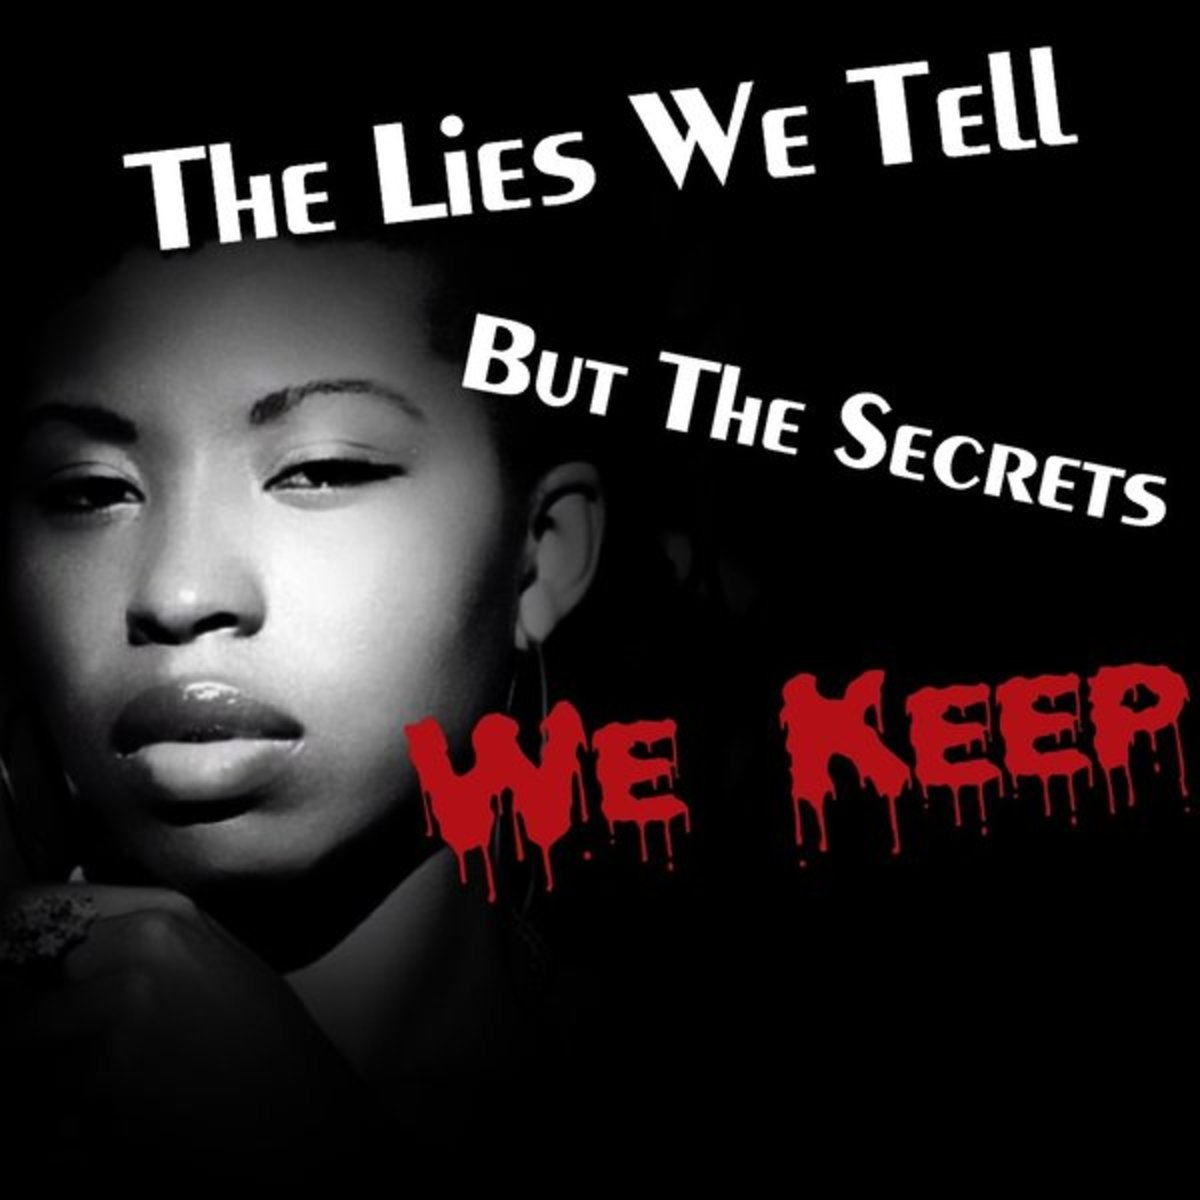 the-lies-we-tell-but-the-secrets-we-keep-part-10